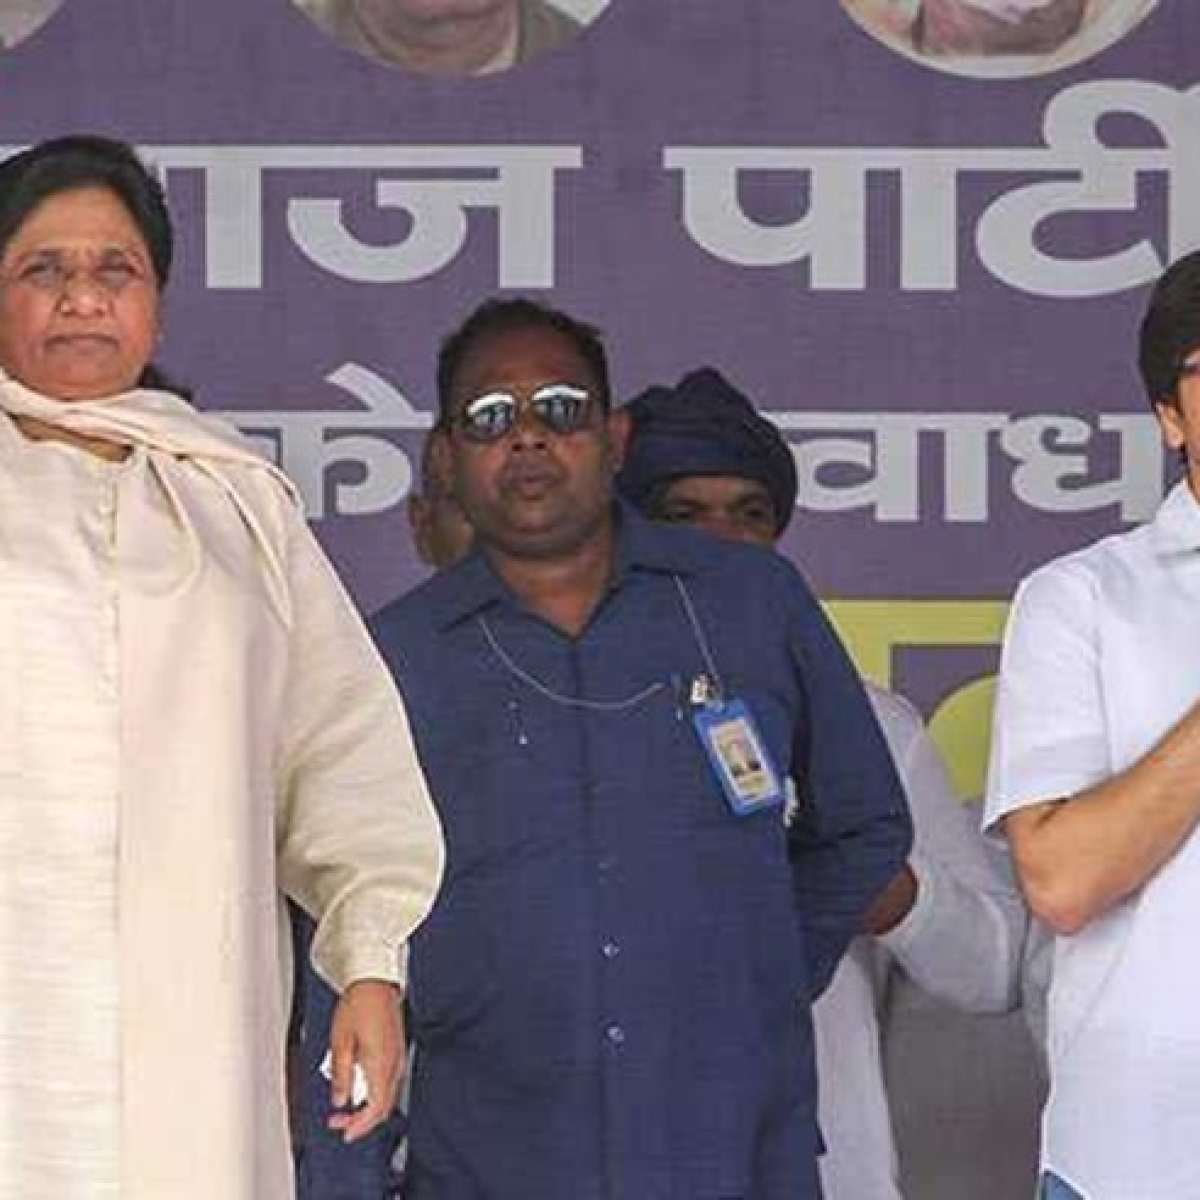 Mayawati appoints brother Anand Kumar as BSP's national vice president, nephew Akash as national coordinator